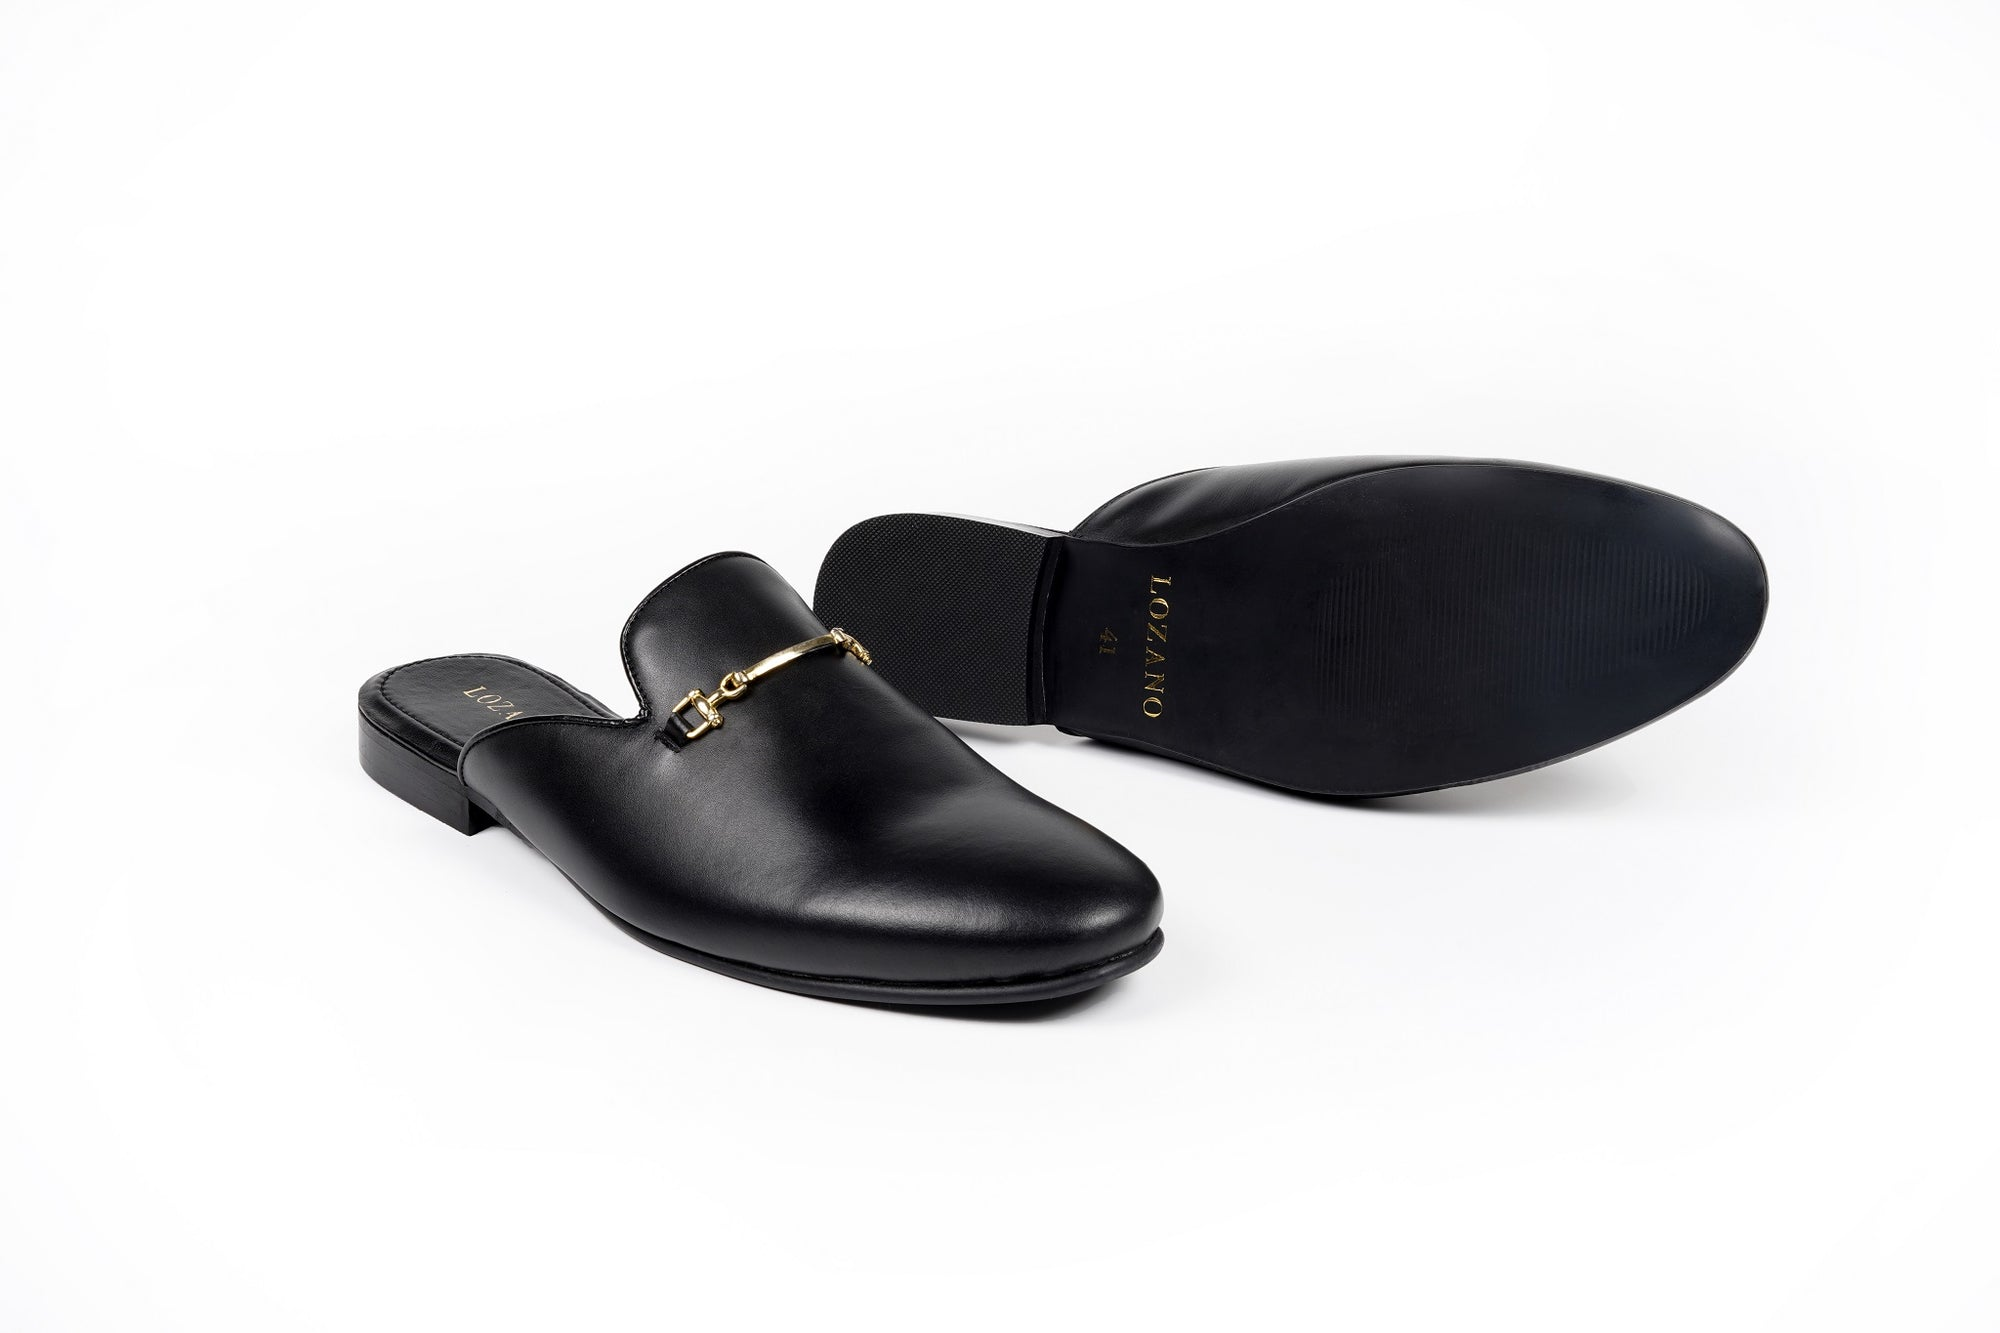 LEATHER MULES WITH GOLD SADDLE - Shop Lozano